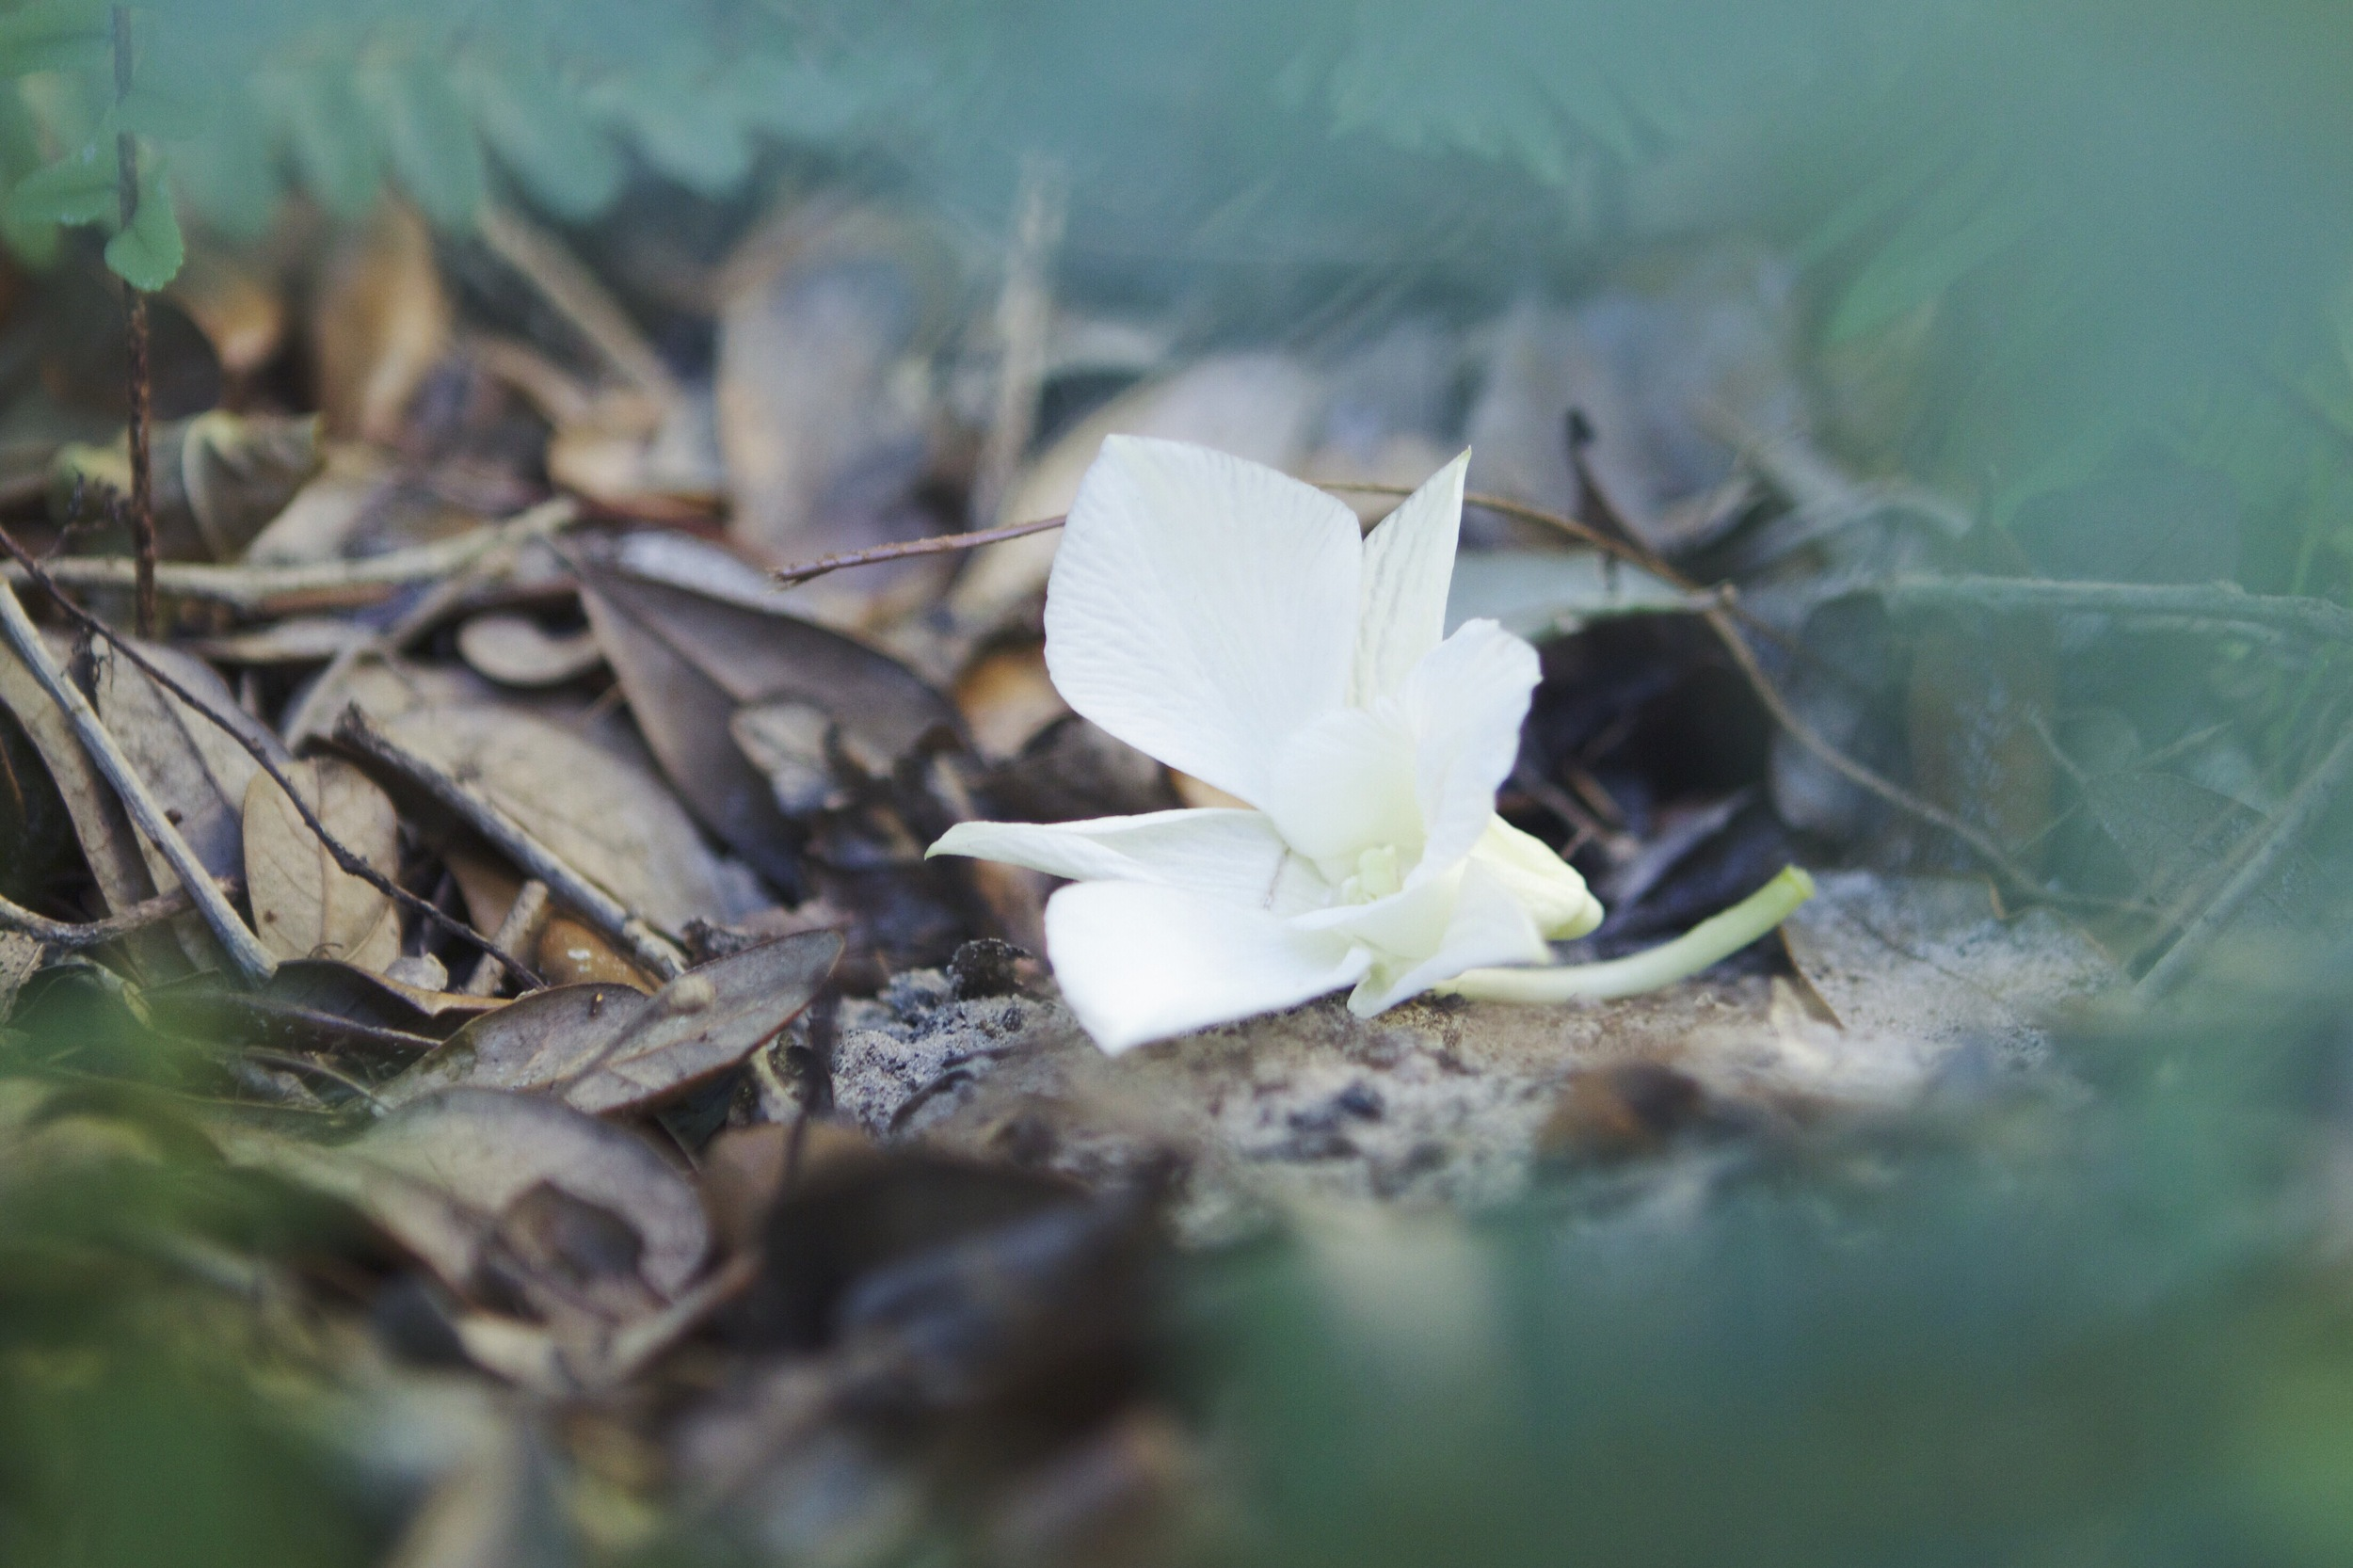 Baby #3's little grave marked with a flower